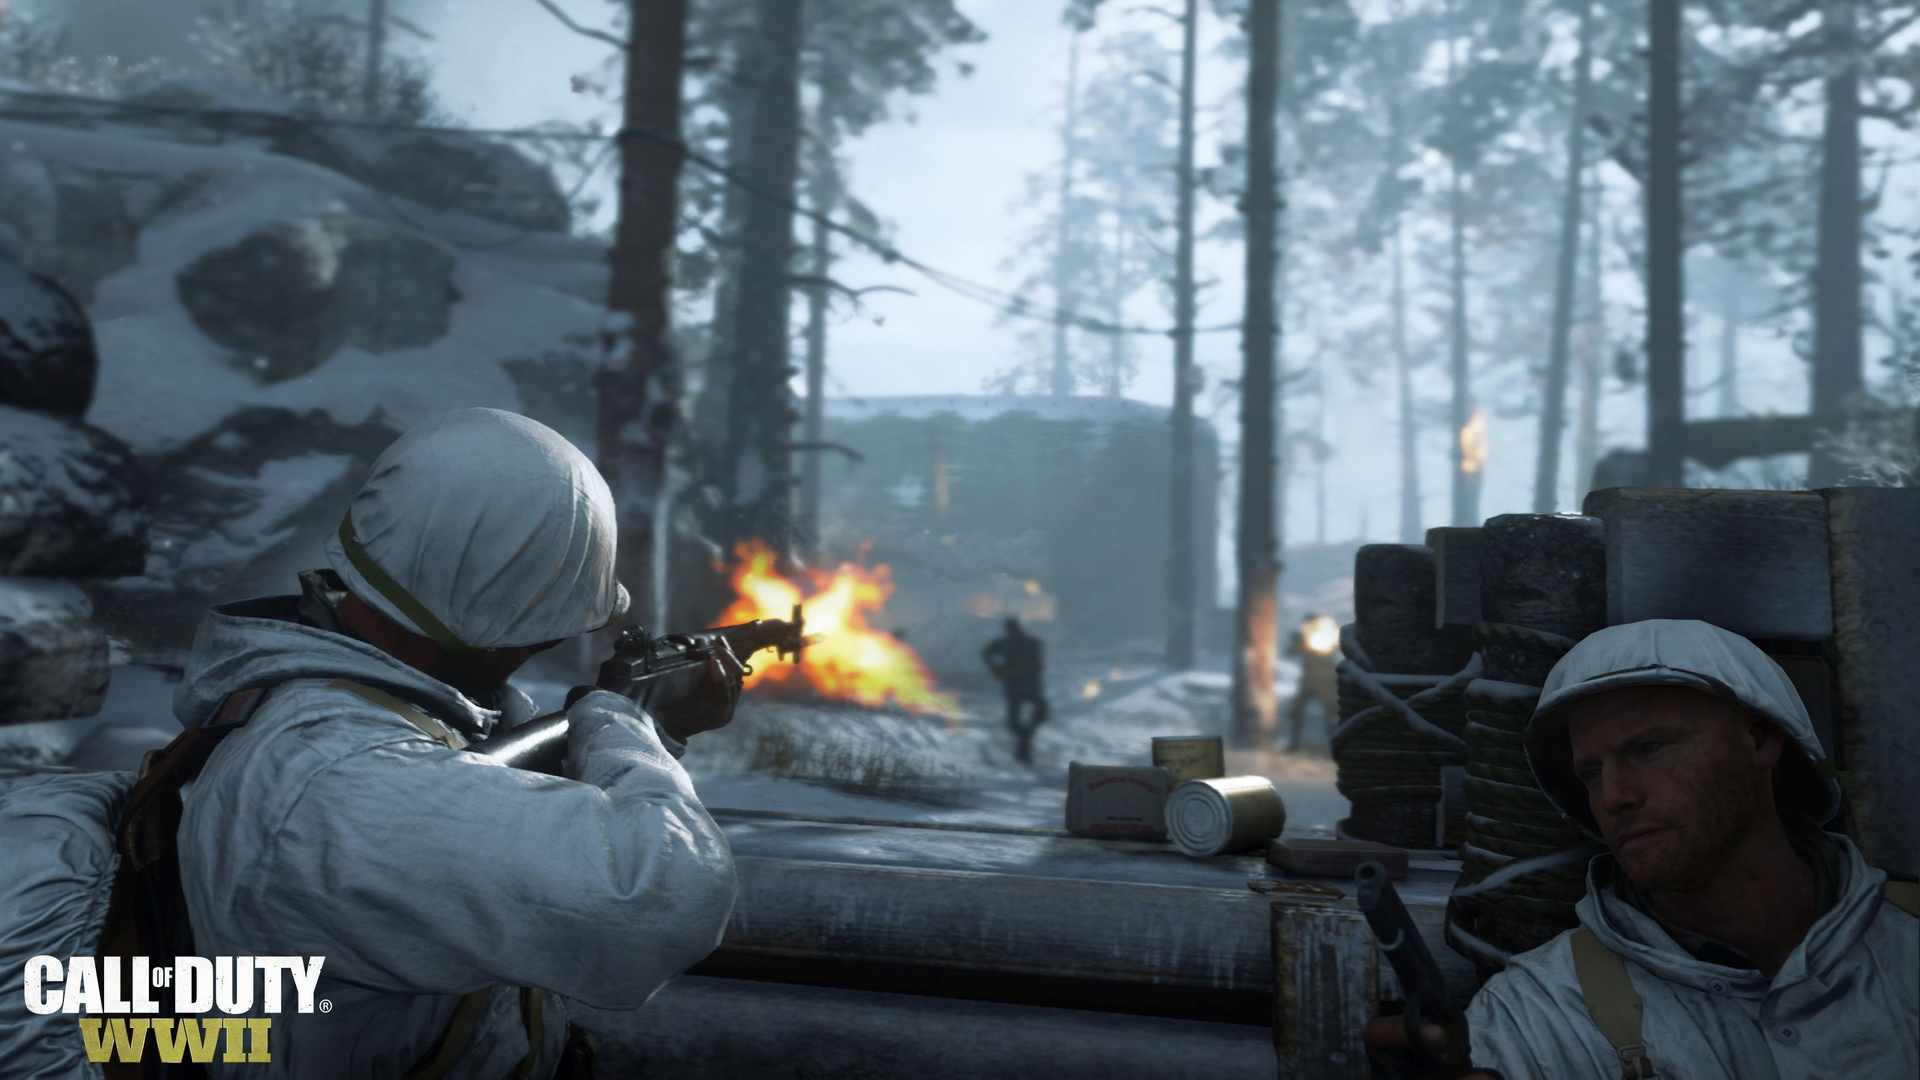 Call of Duty: WWII - E3 2017 Screenshots + 13 Minutes of Multiplayer